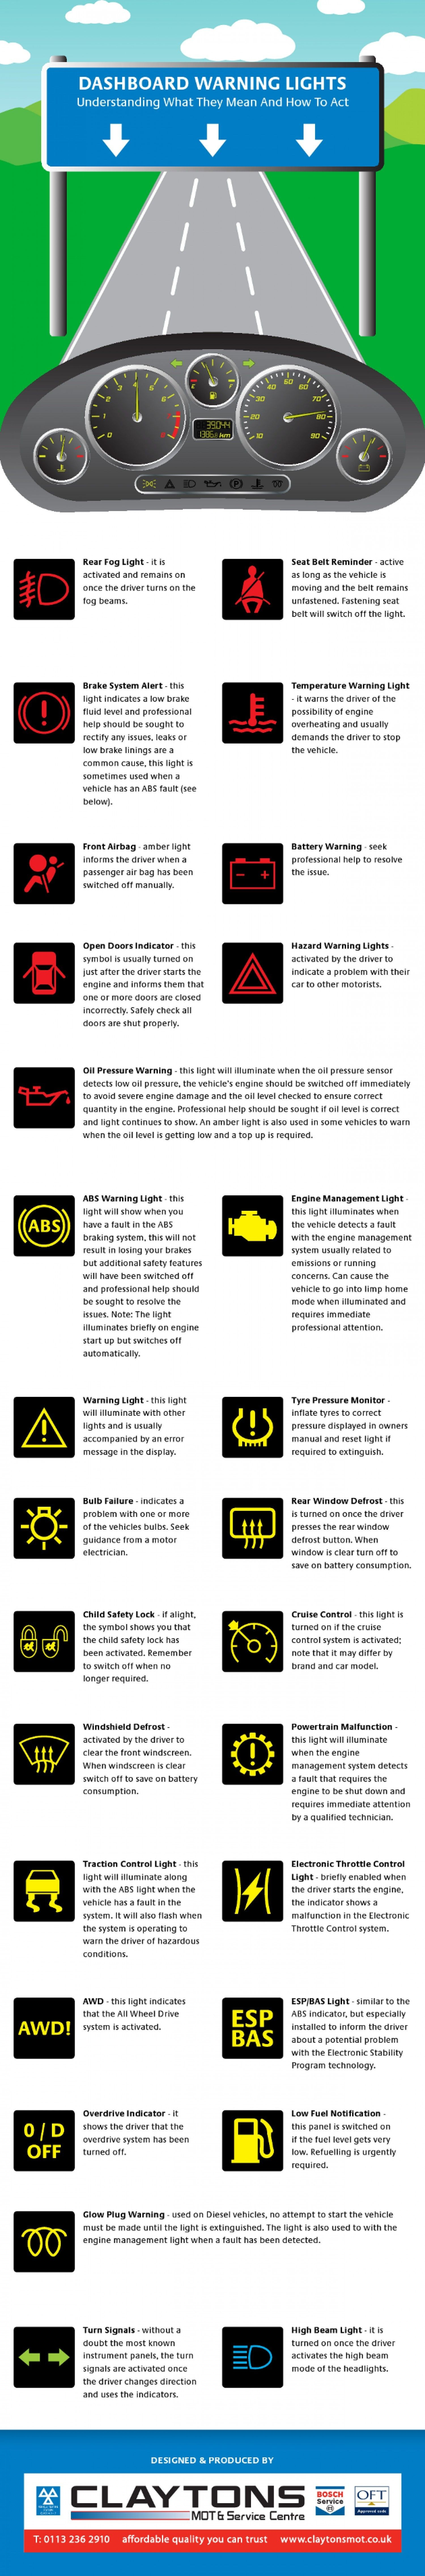 Car Engine Diagram Driving Test Car Dashboard Warning Lights Understanding What they Mean & How to Of Car Engine Diagram Driving Test